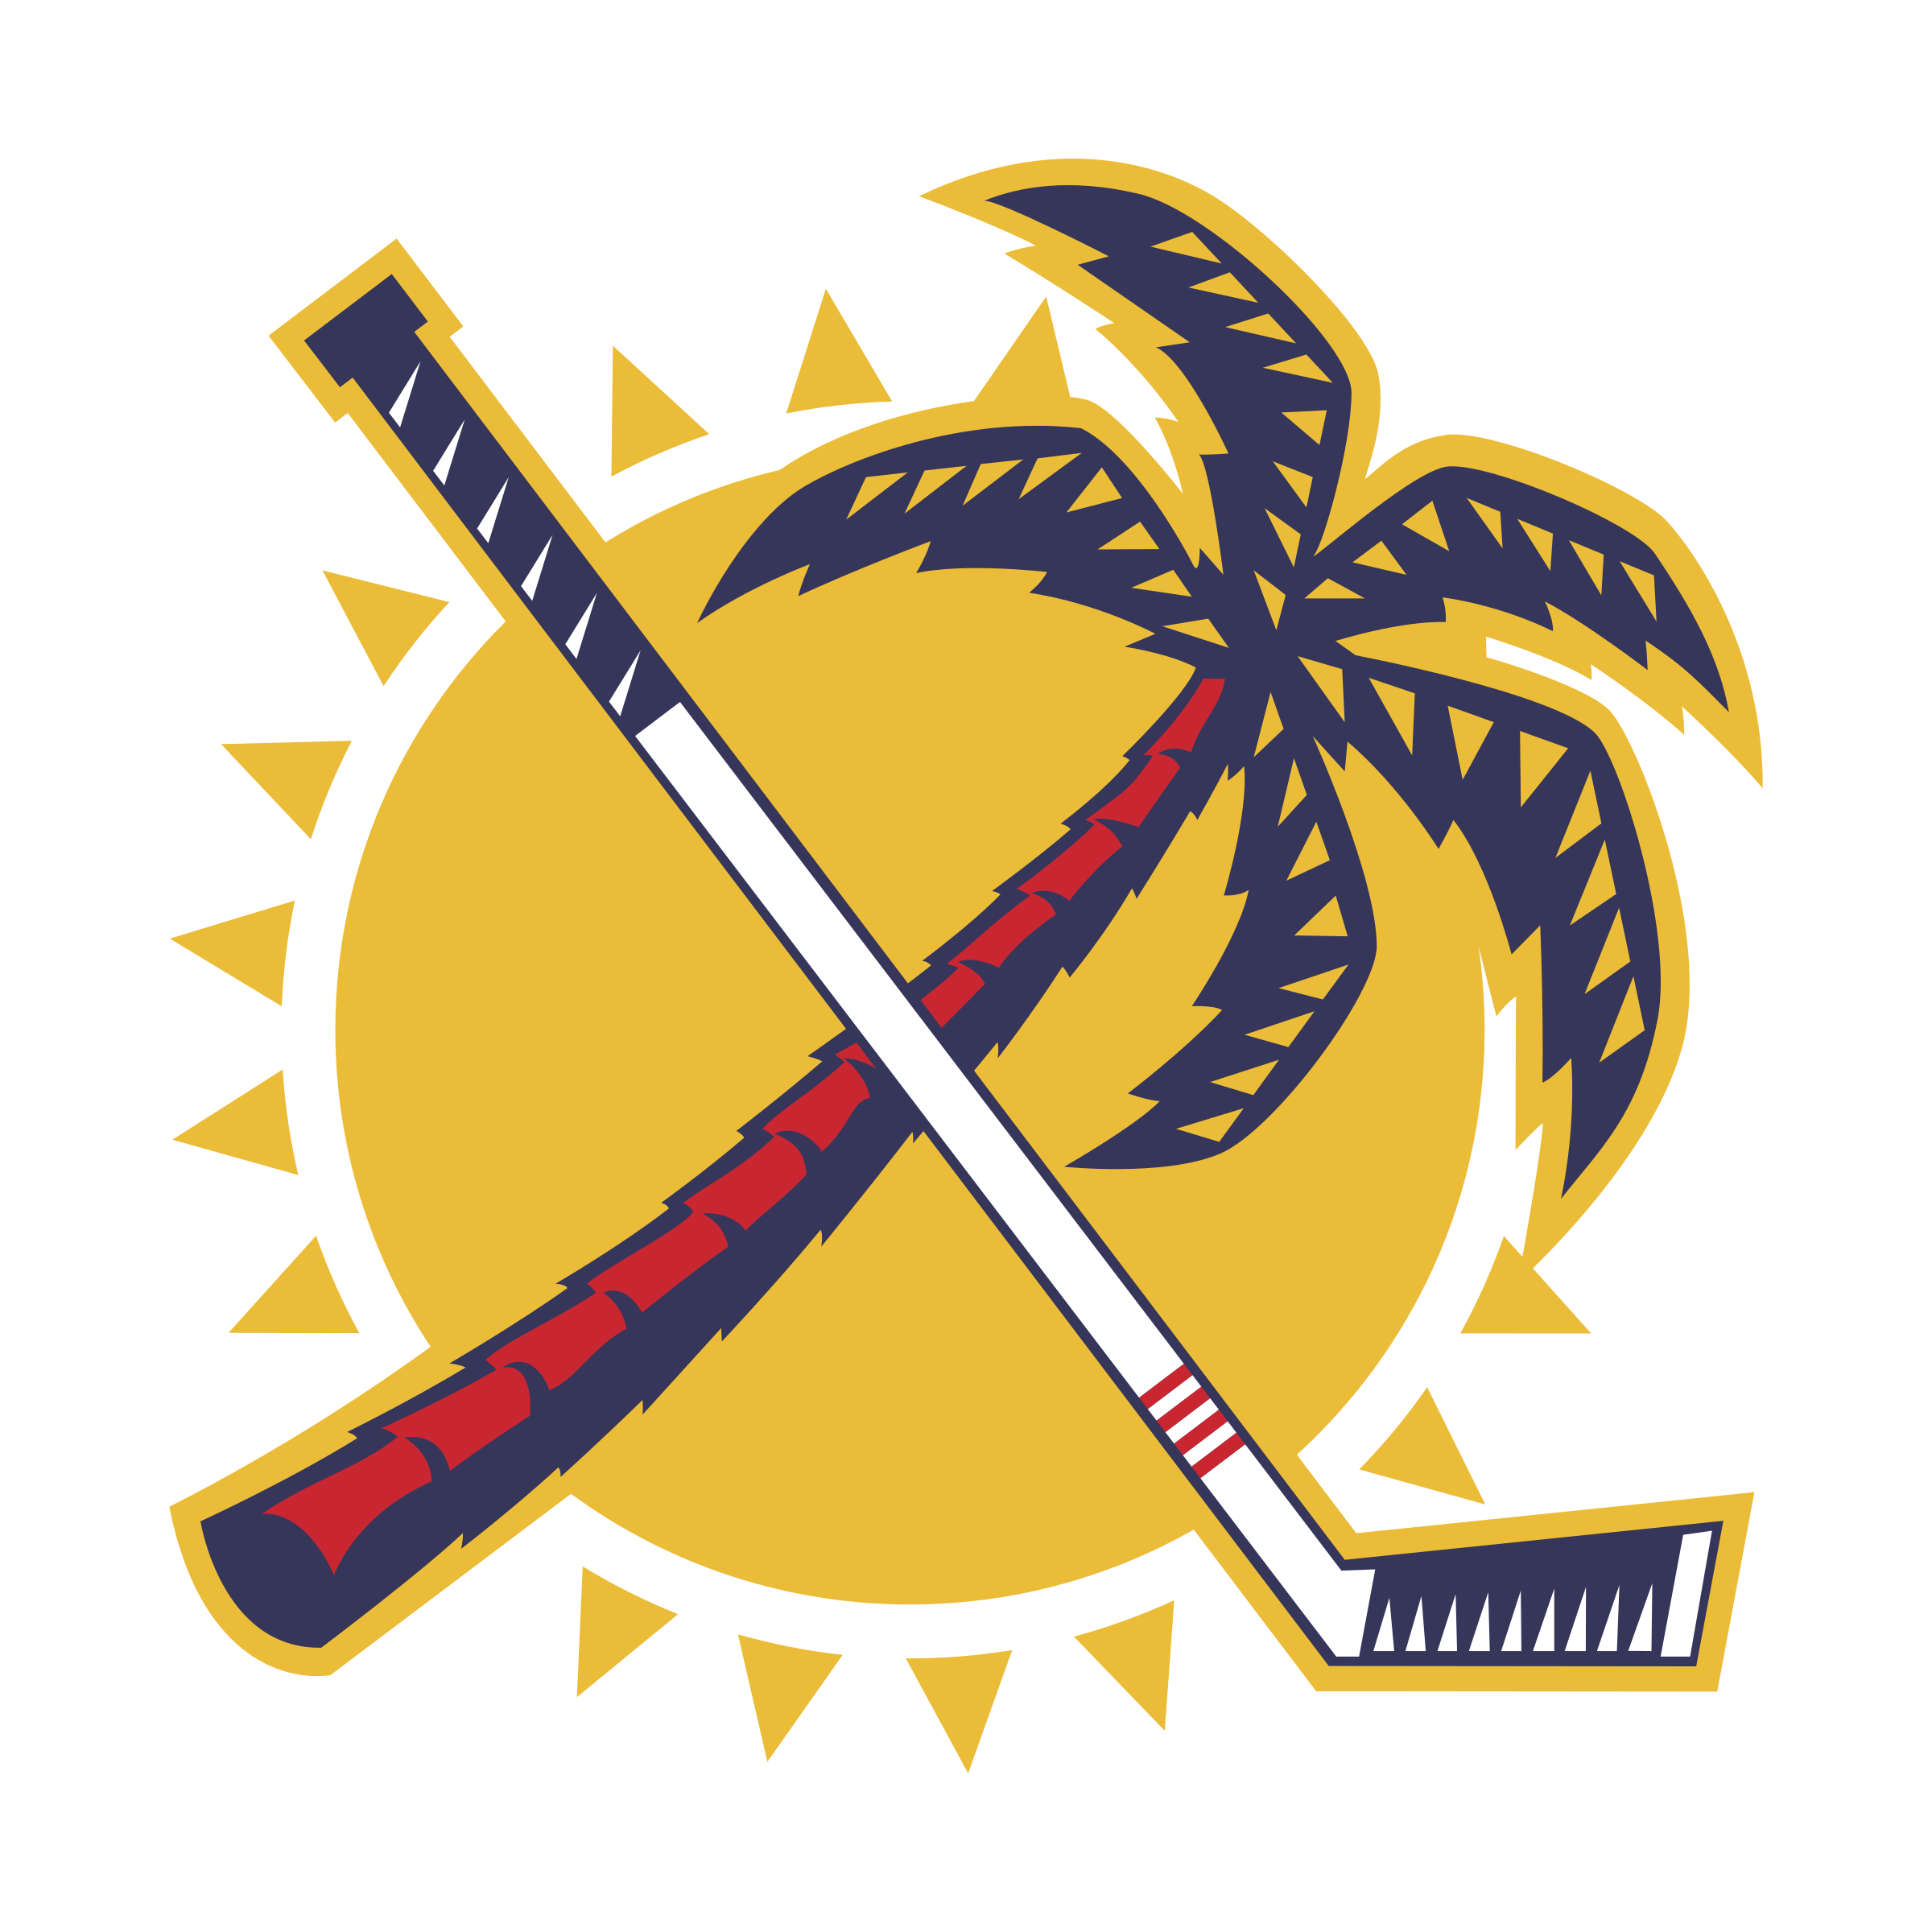 Florida panthers logo png. Transparent svg vector freebie